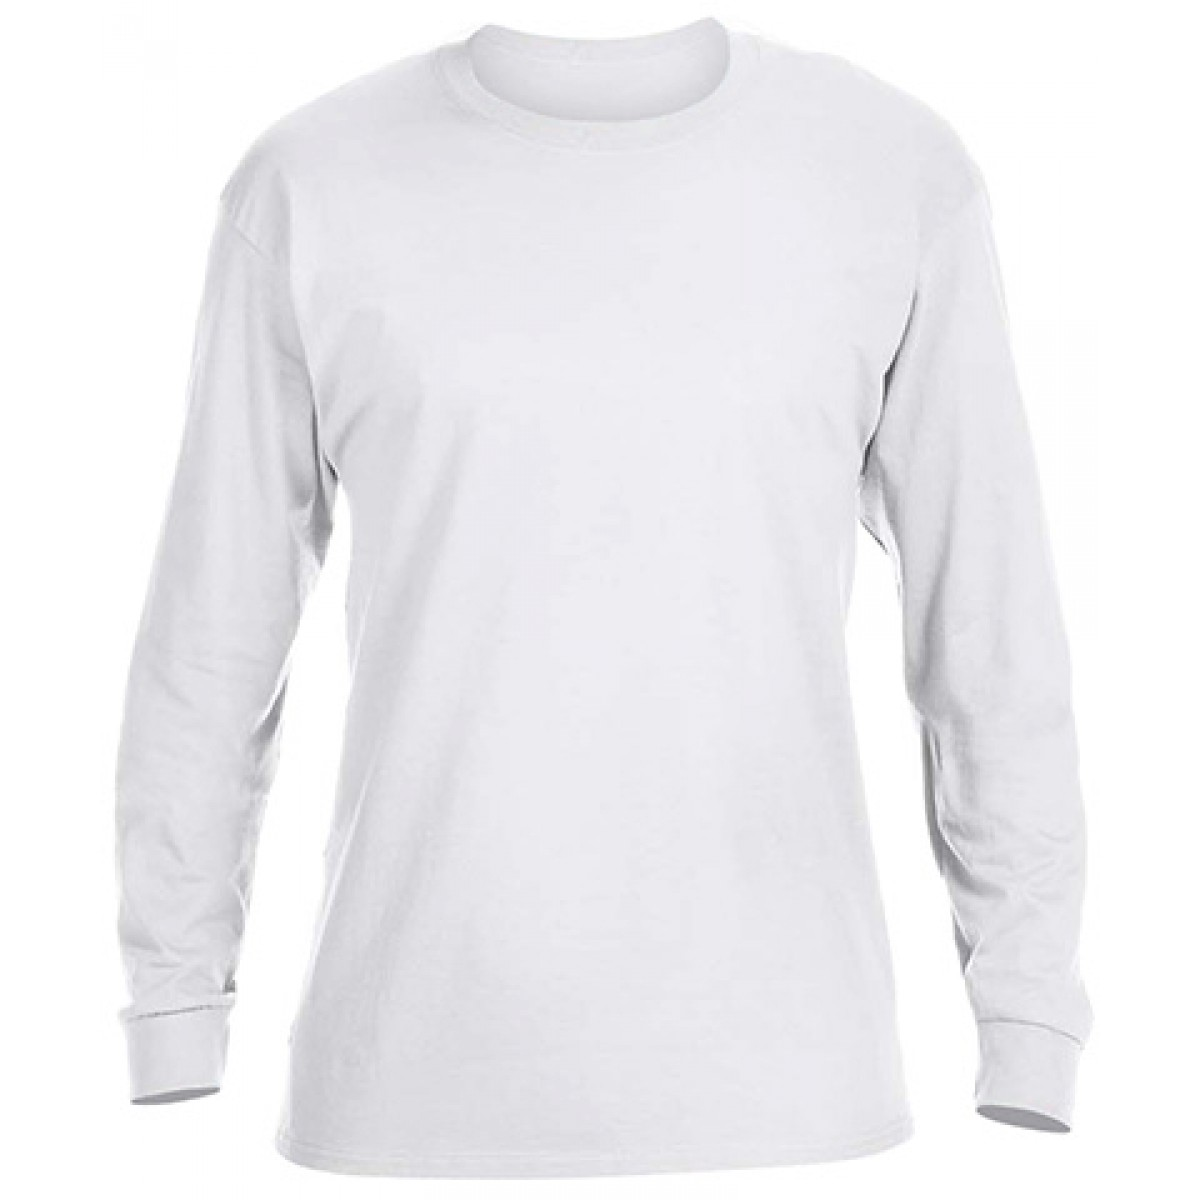 Basic Long Sleeve Crew Neck - SPECIAL PRICE FOR CHAMPS!!!